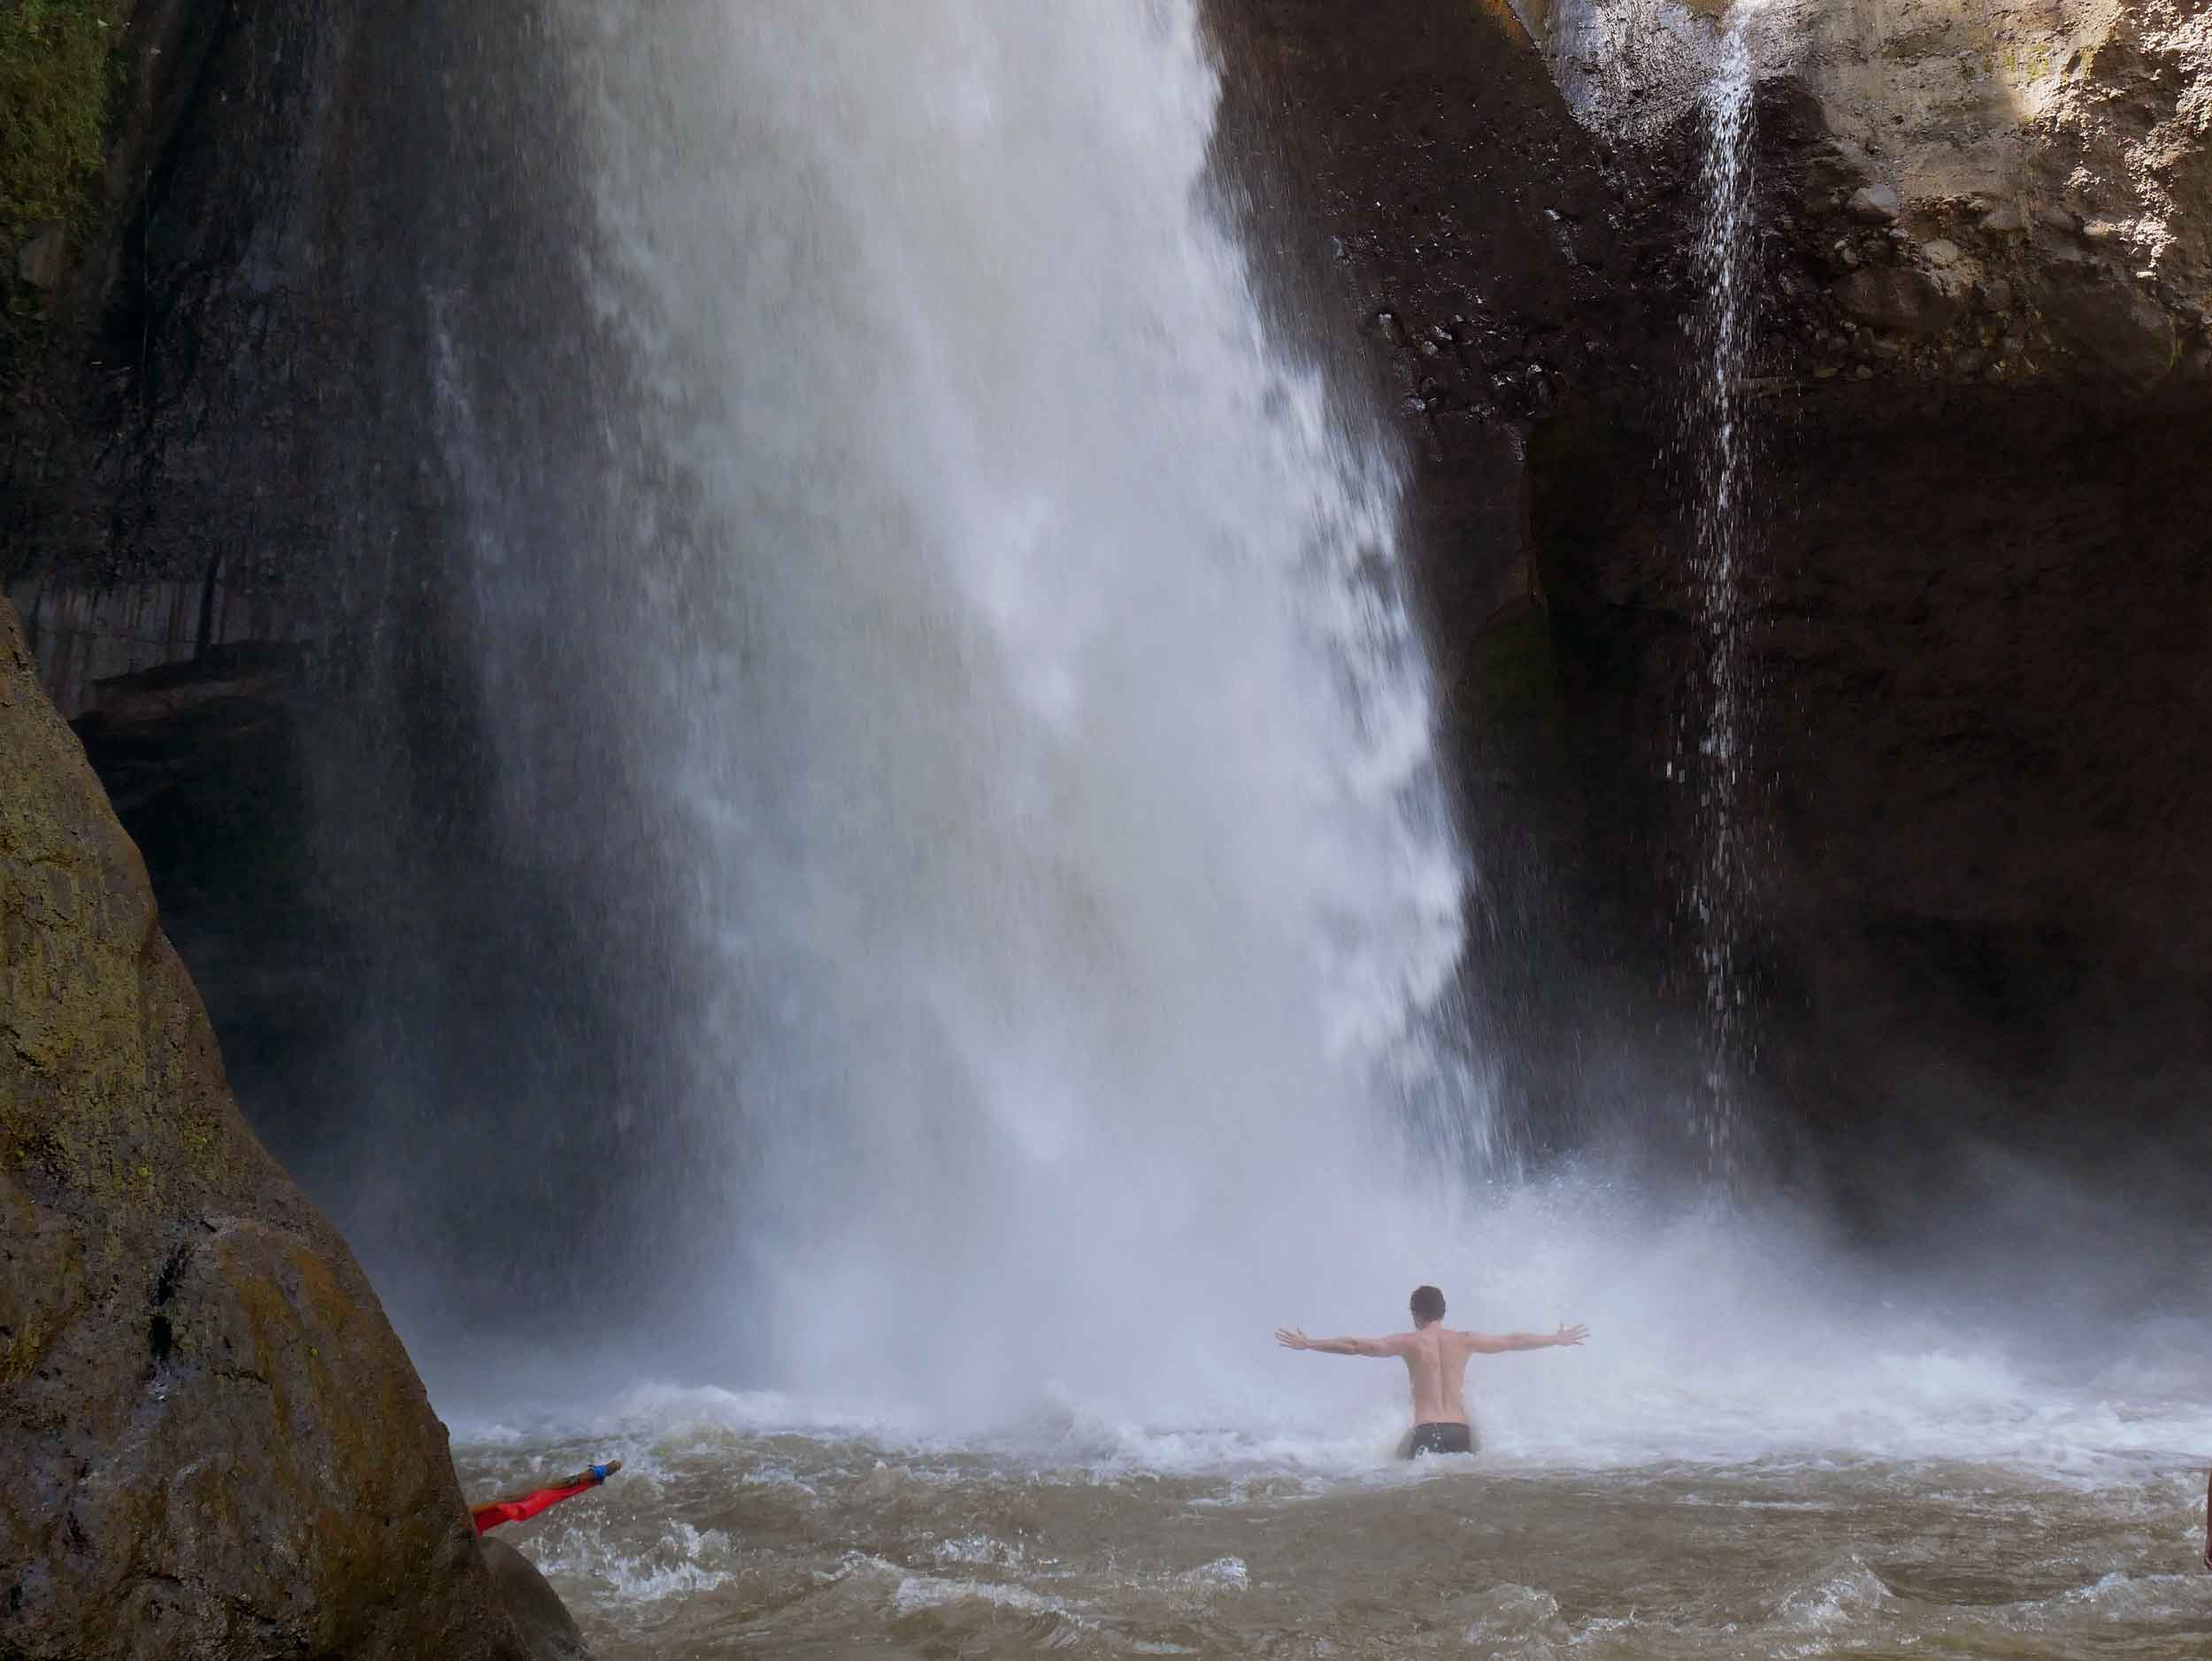 David, always the water sign, wasted no time as he dove into the powerful falls.